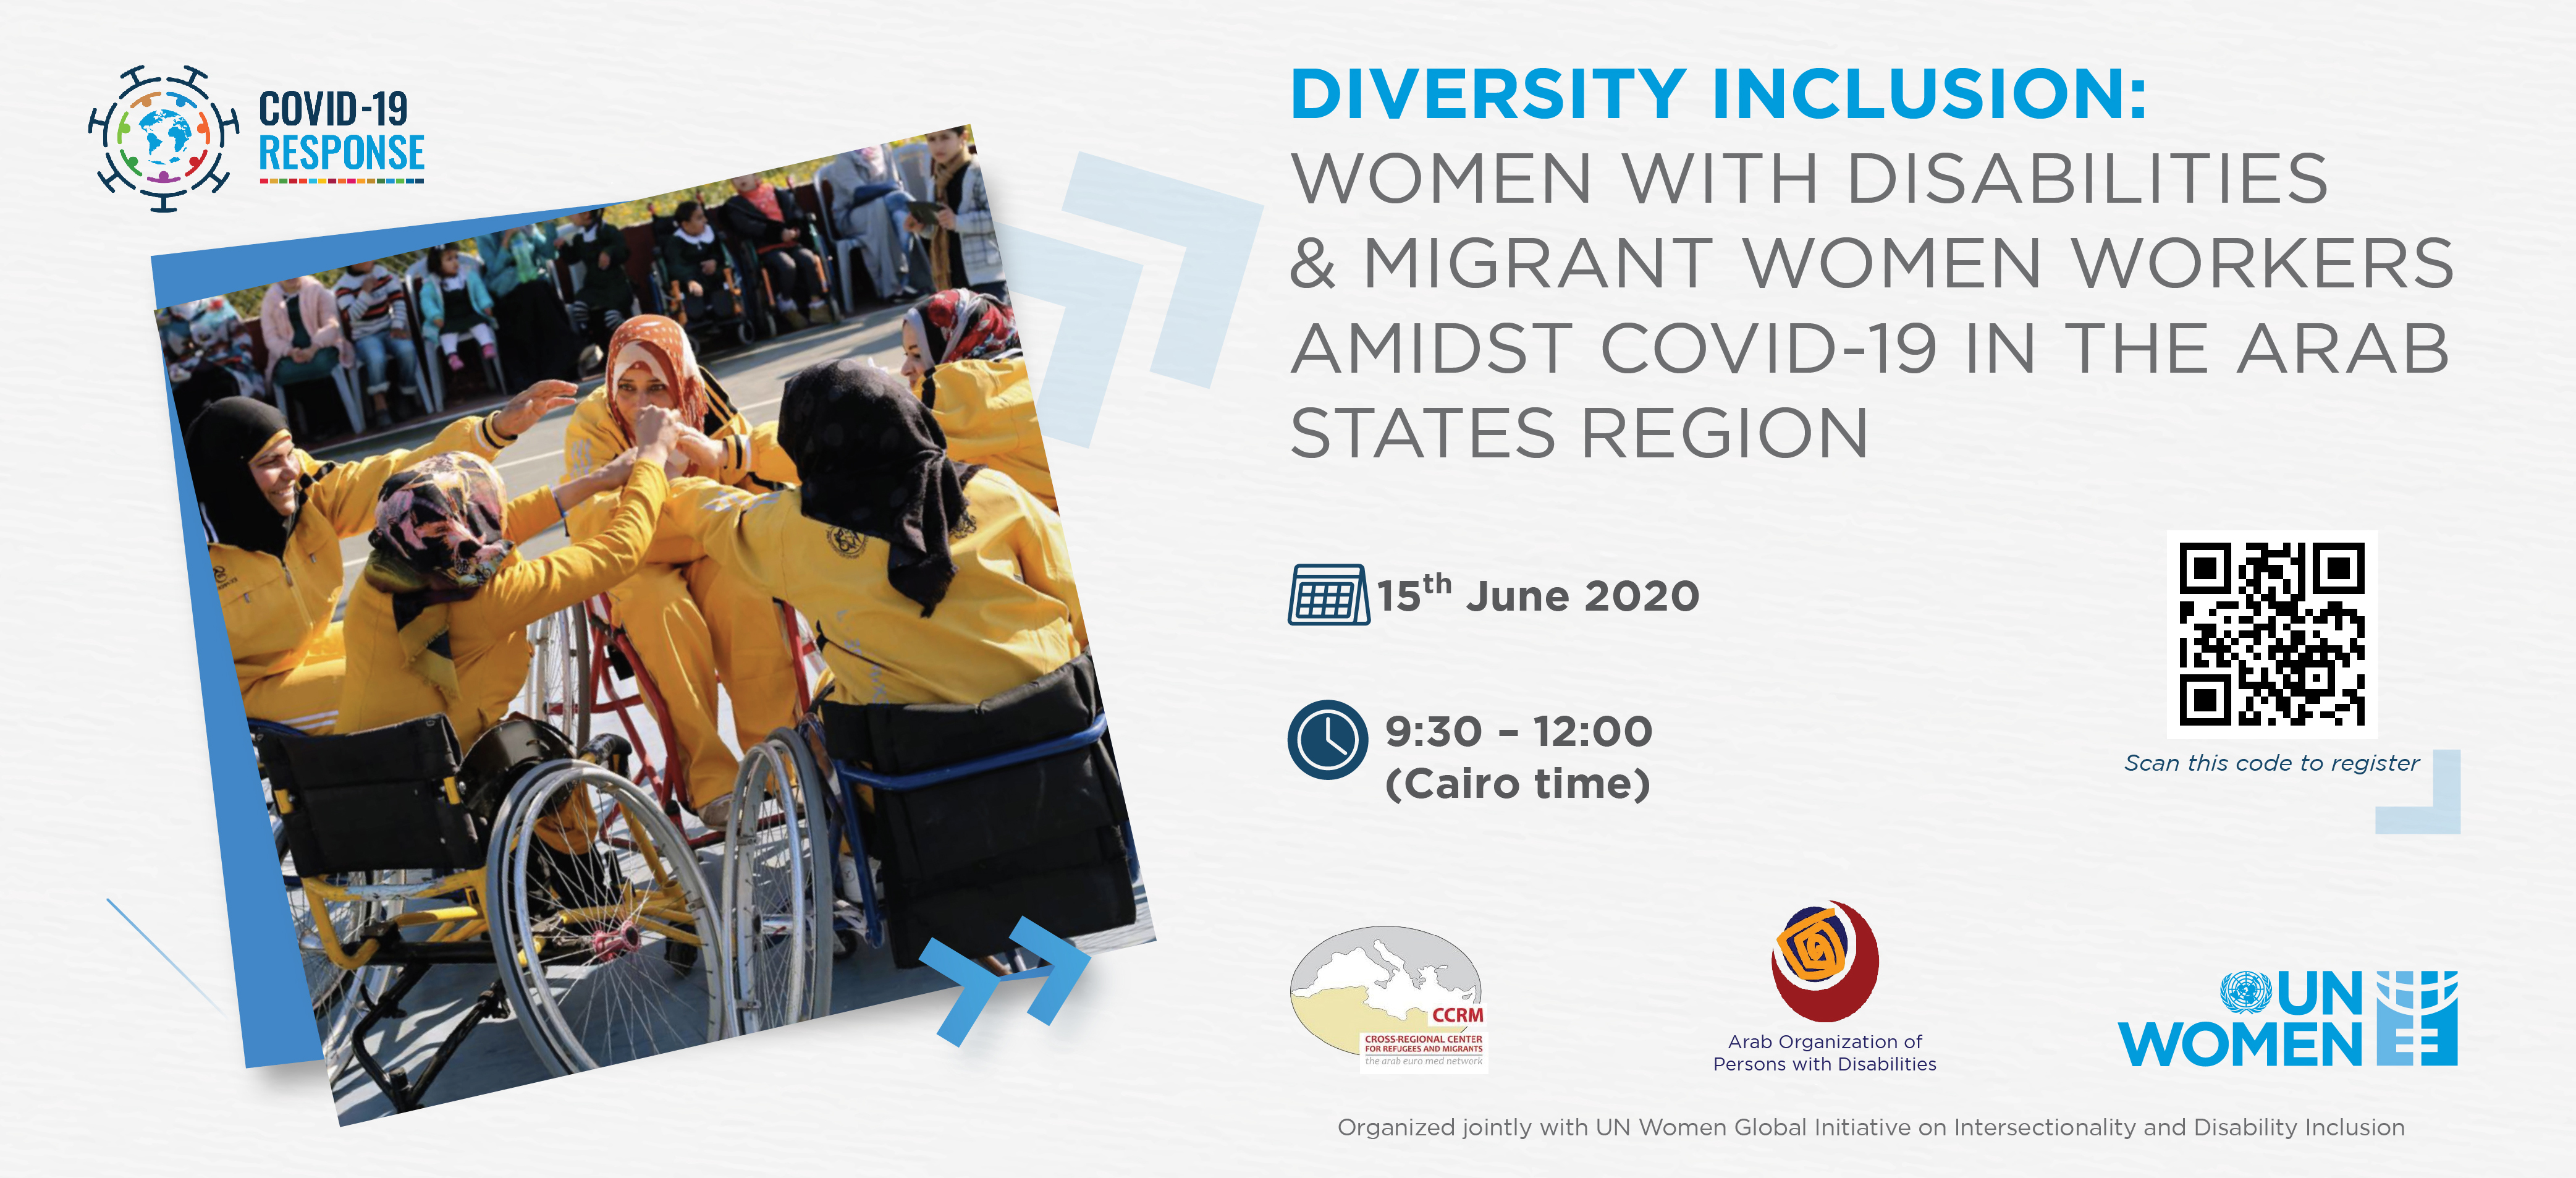 Diversity inclusion: Women with Disabilities and Migrant Women Workers amidst Covid-19 in the Arab States region